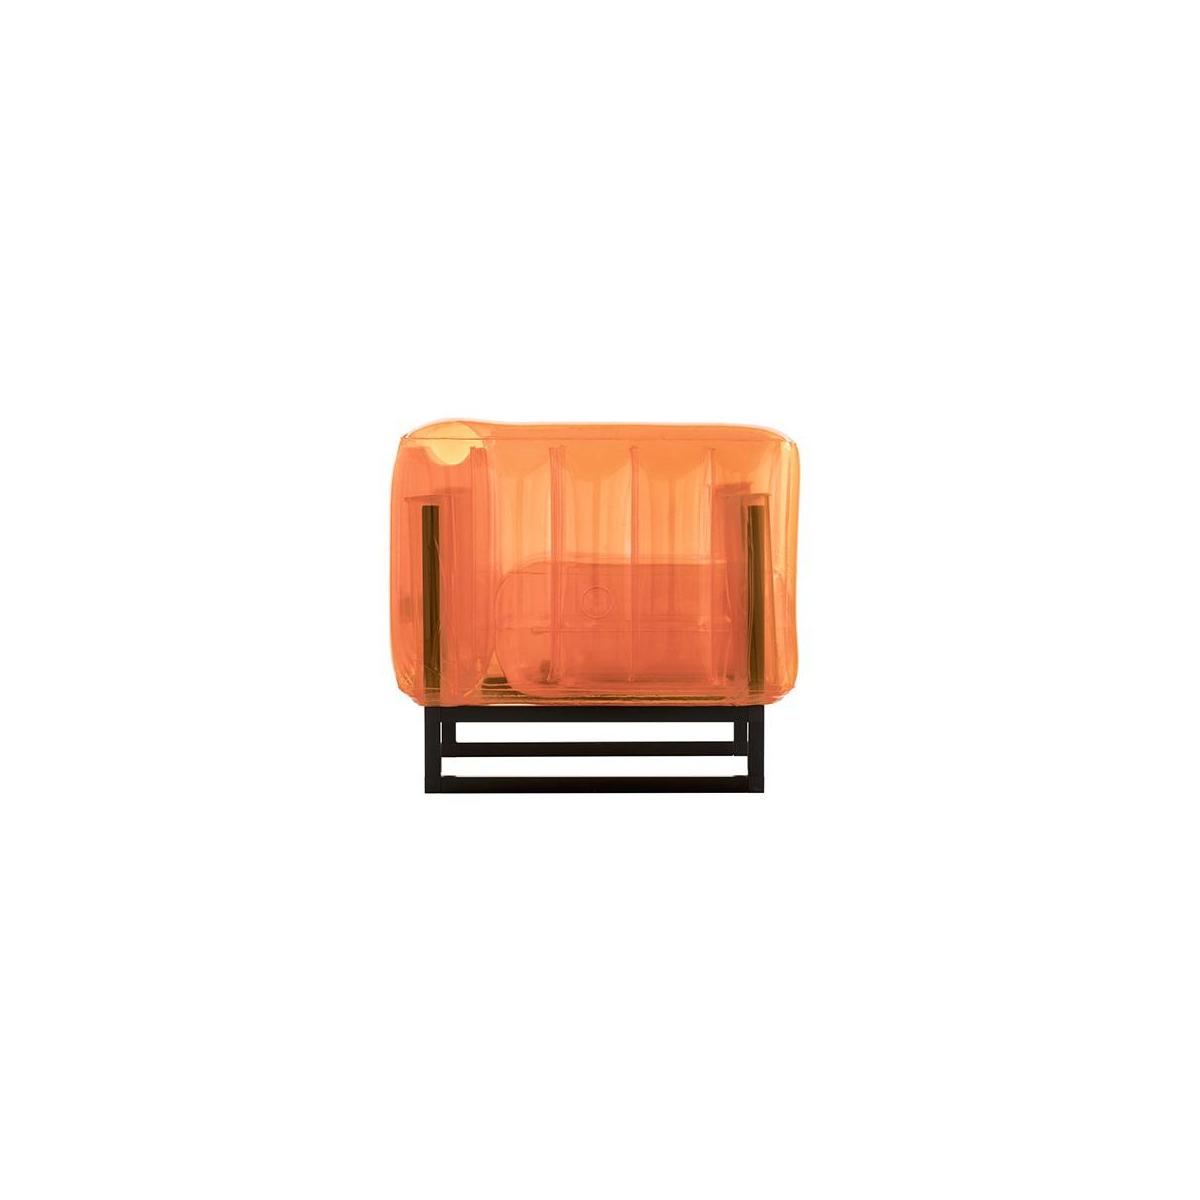 Fauteuil gonflable en PVC - Orange n°4